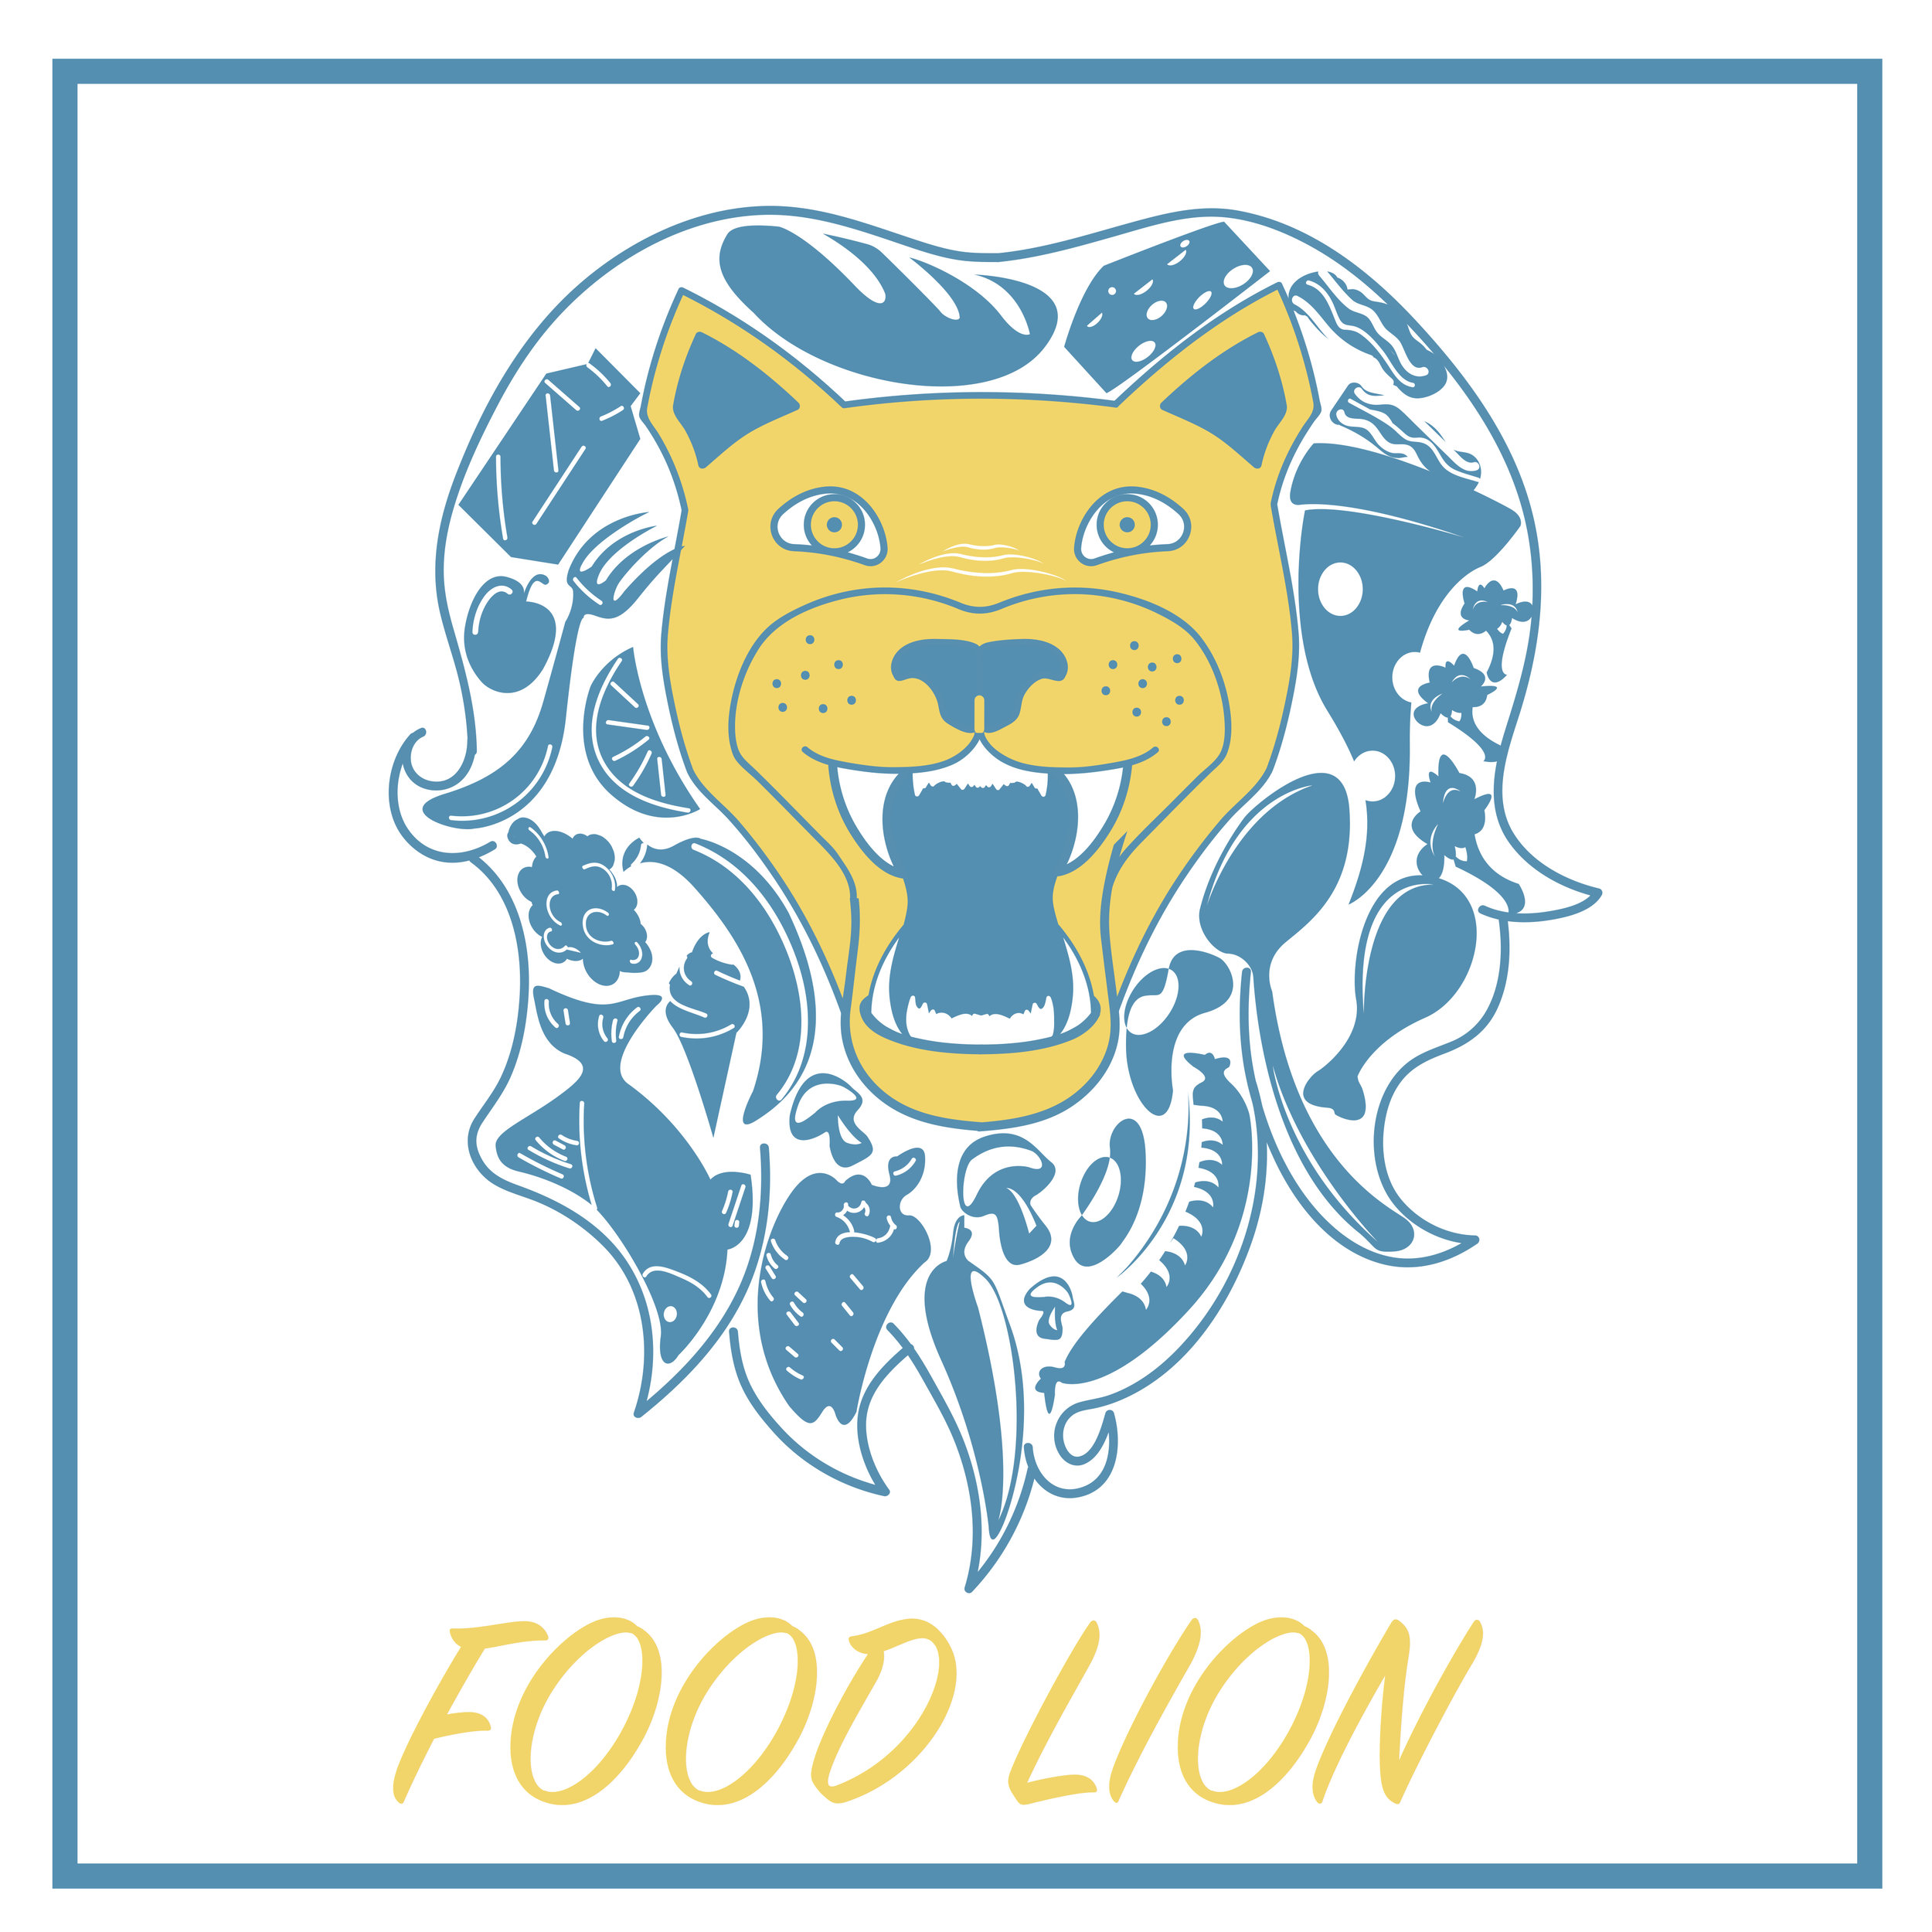 Food Lion Logo - Redesign